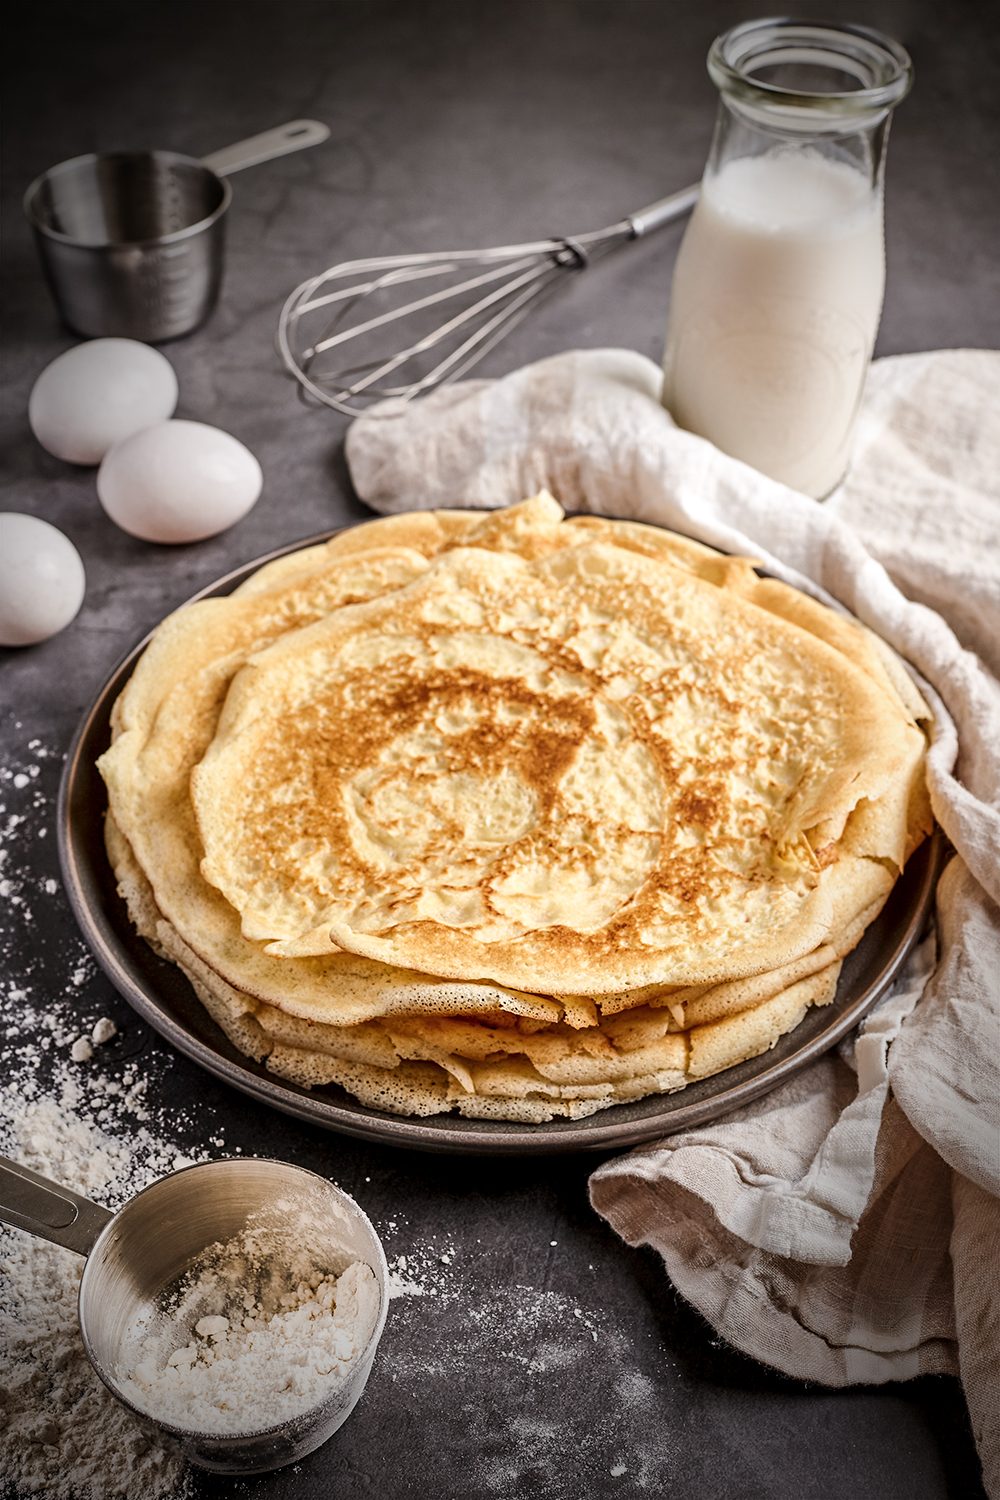 Simple French crêpes